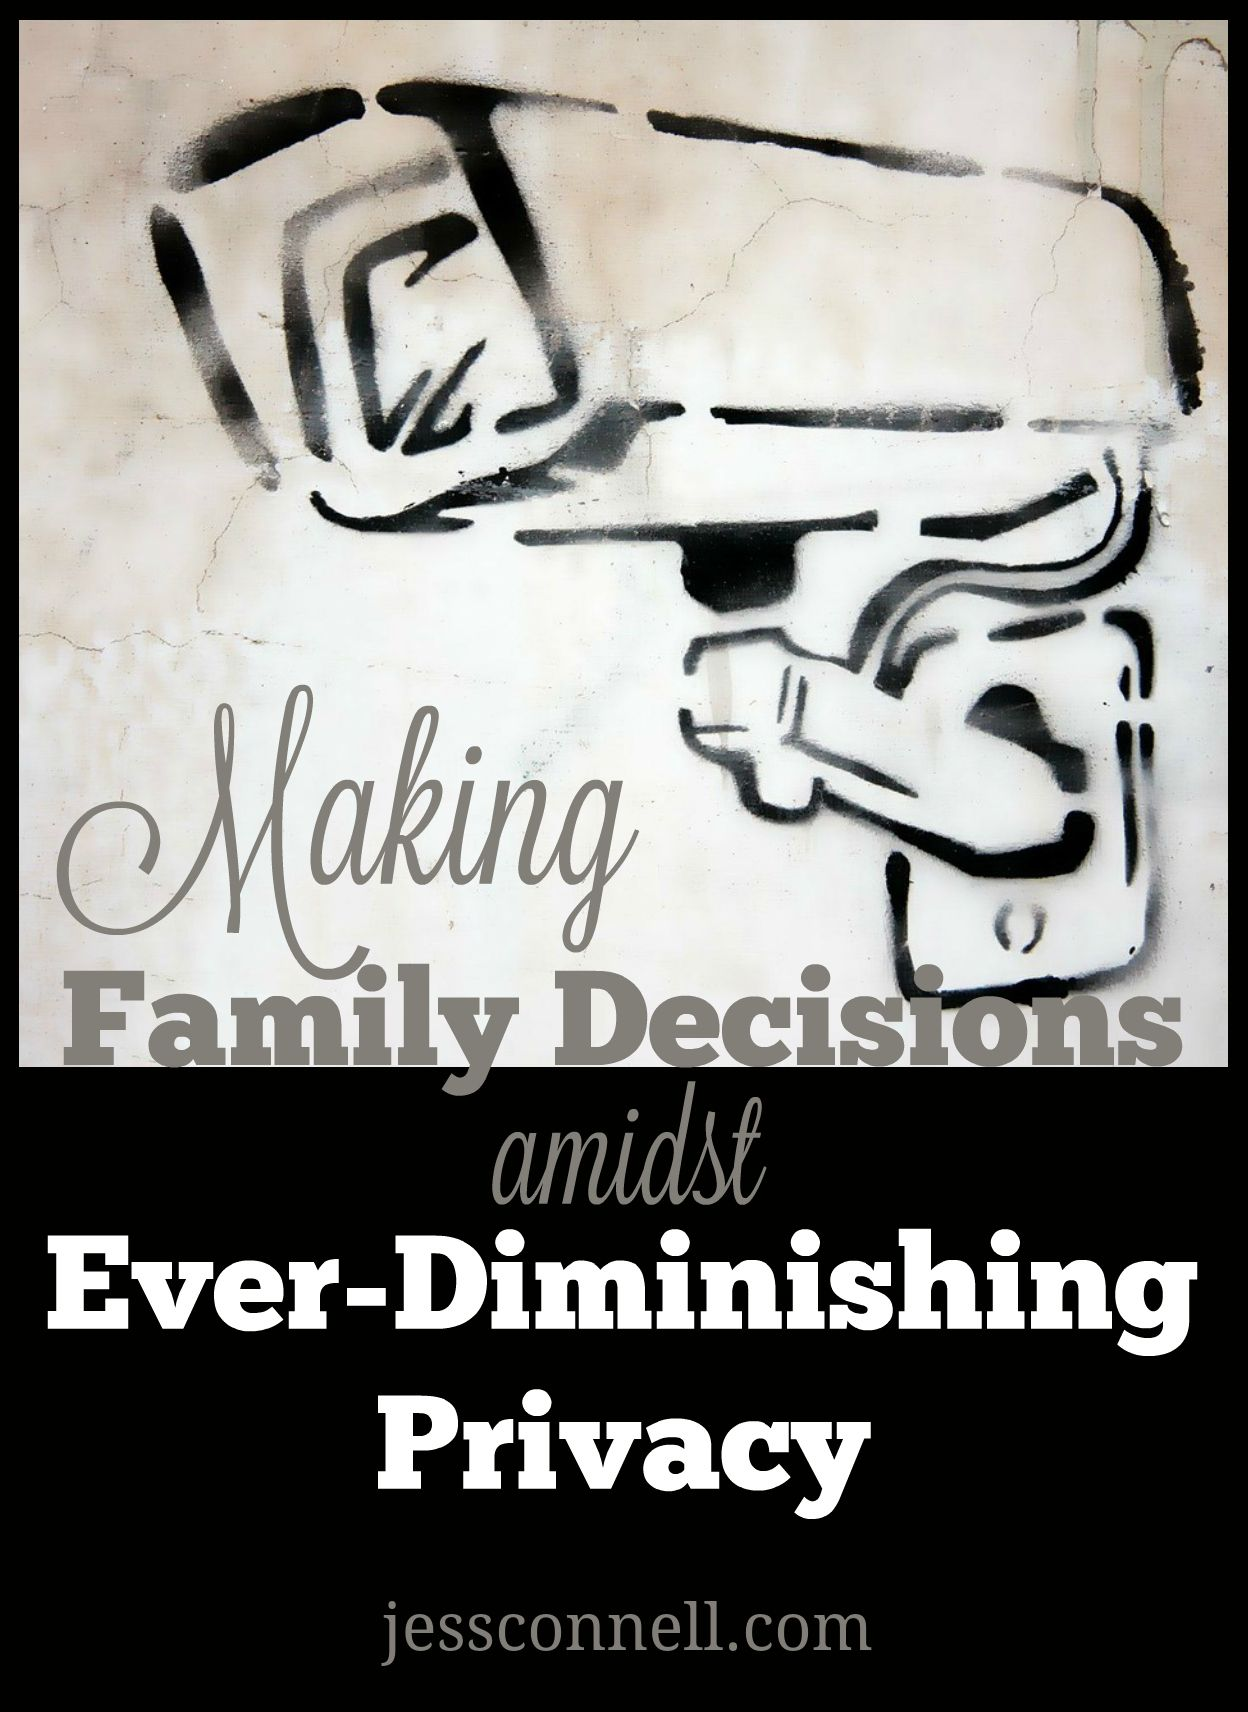 Making Family Decisions amidst Ever-Diminishing Privacy // webcams, remote-access devices, social media-- how will you navigate these things with your family and children? // jessconnell.com